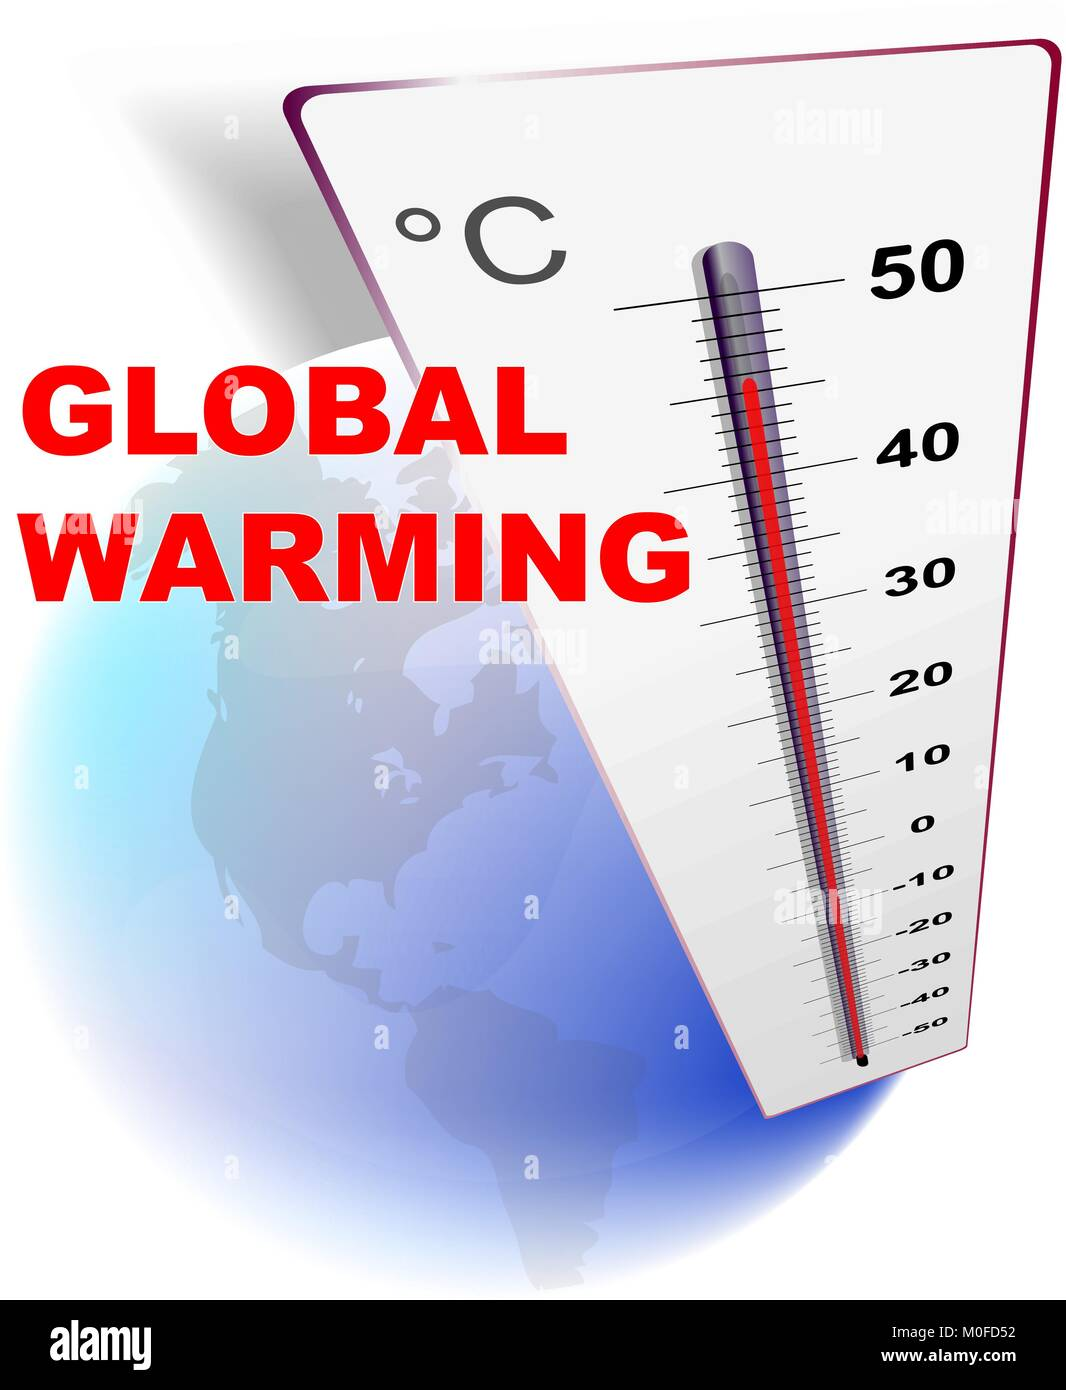 Eco design — global warming with globe and thermometer - Stock Vector